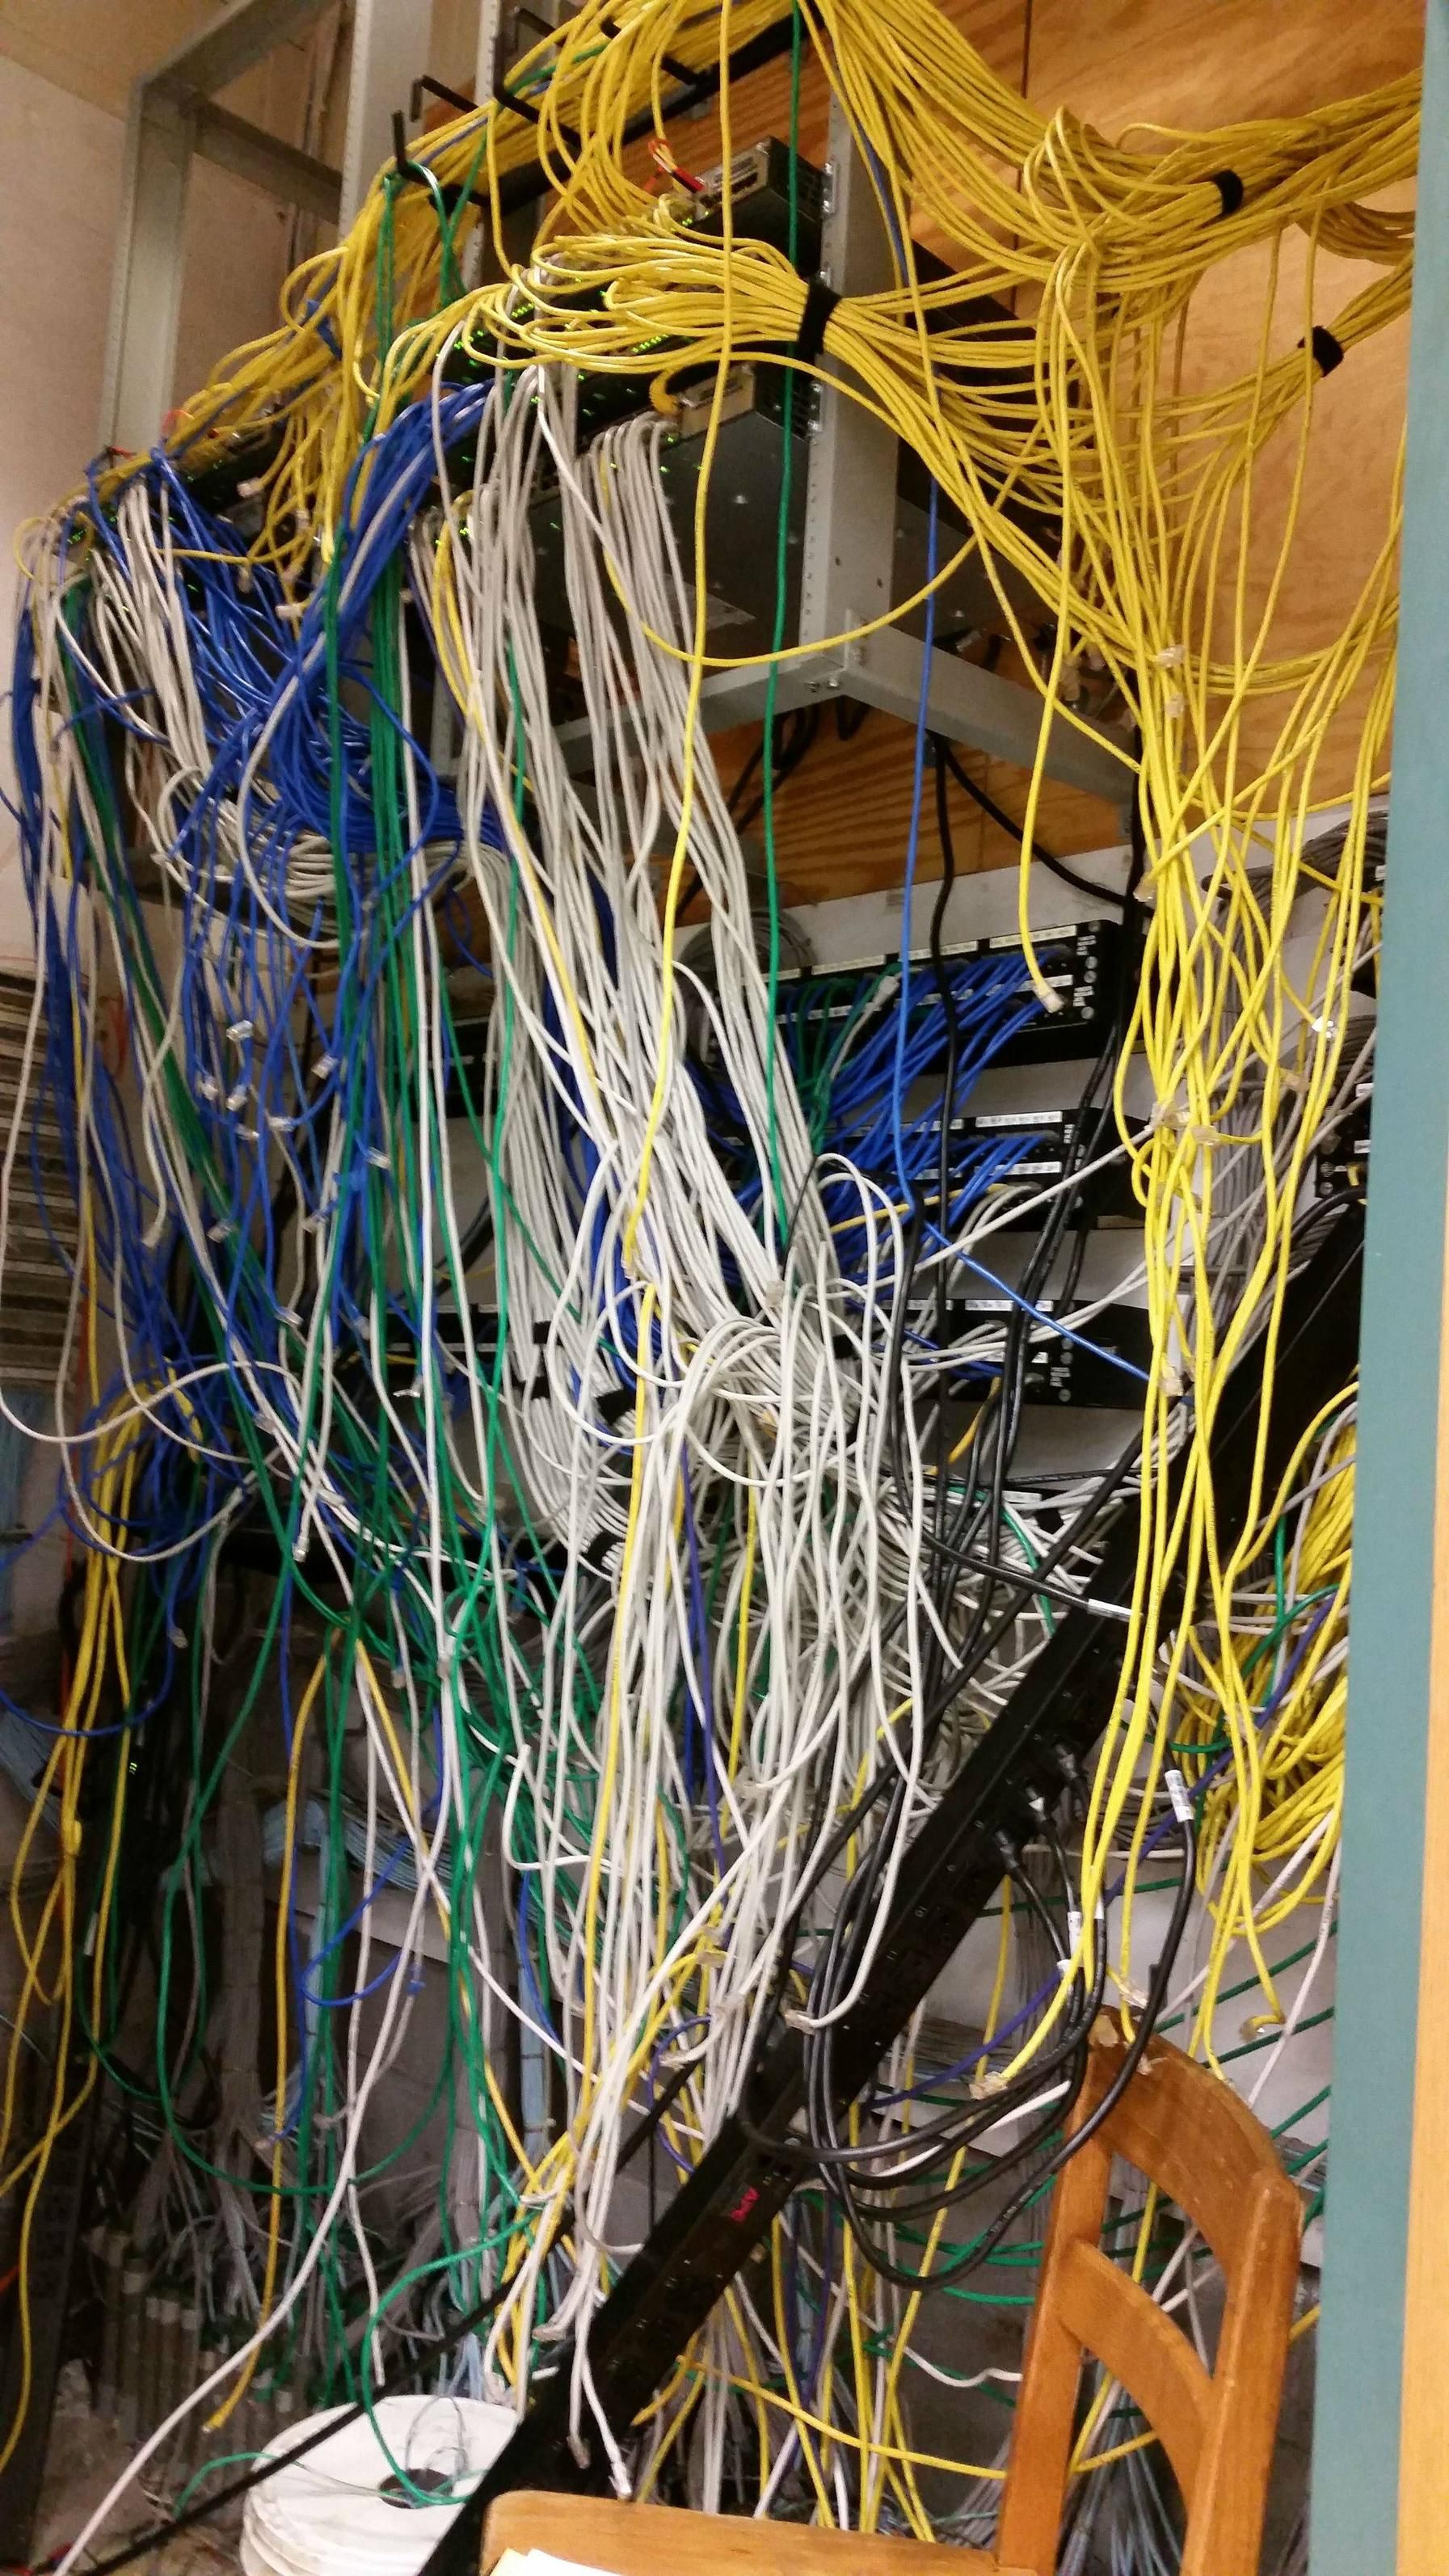 hight resolution of very bad wiring server room very bad network cable plumbing rats